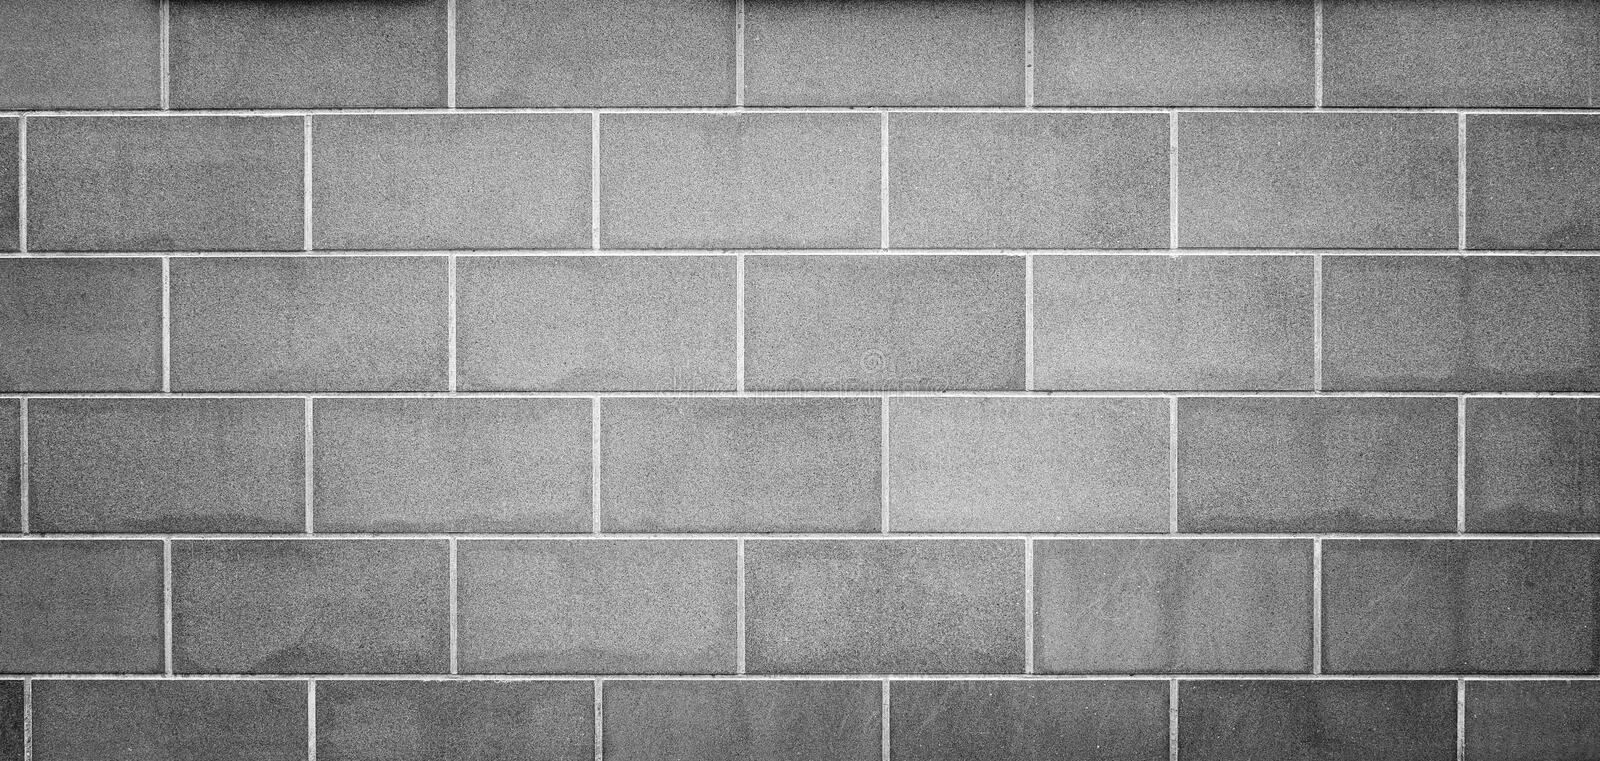 Modern gray slab wall background. High resolution full frame background of a new, modern and clean wall or building exterior made of stone slabs in black and royalty free stock photos